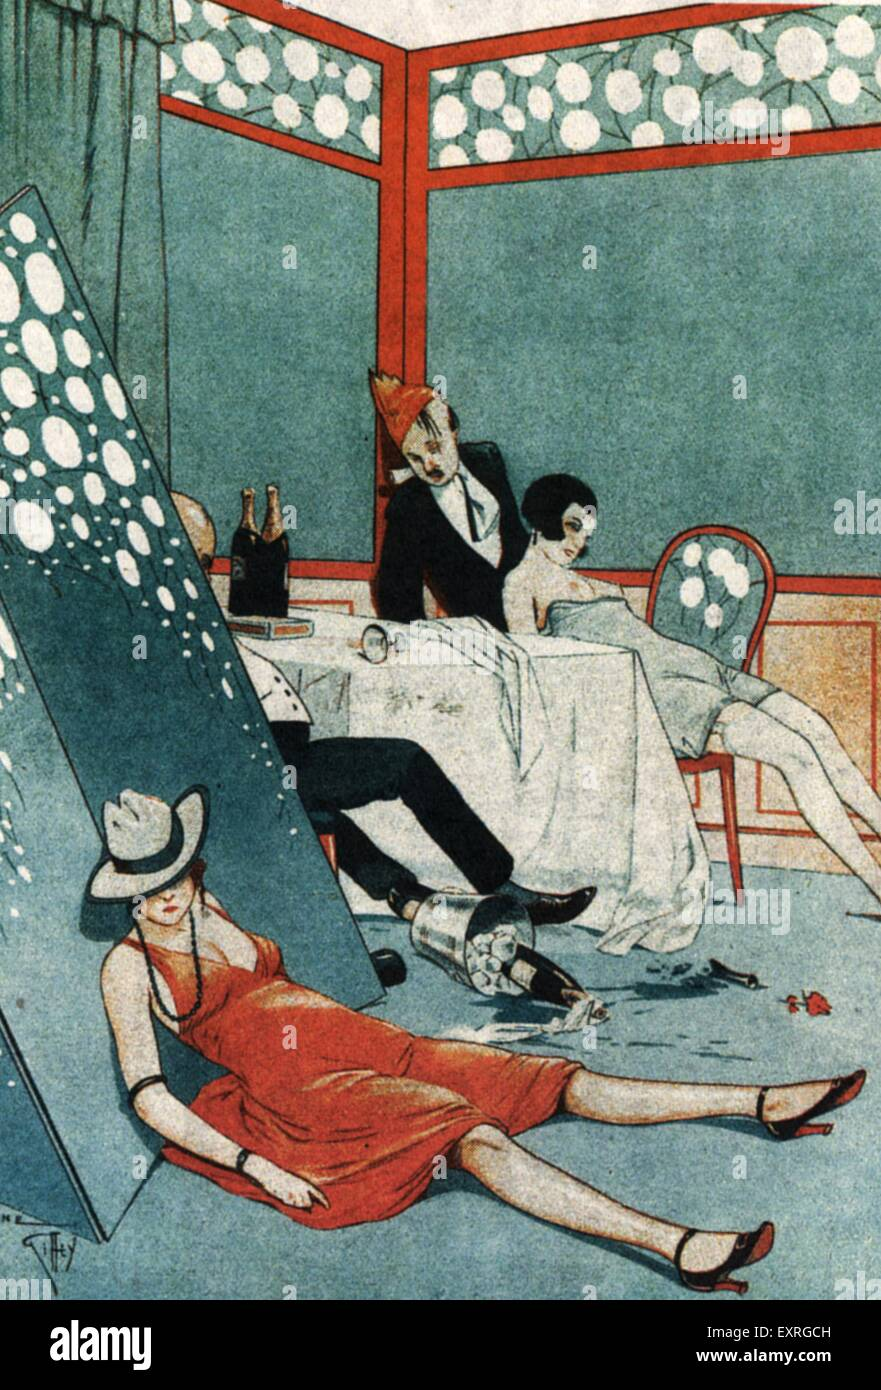 1920s France After The Party Magazine Plate - Stock Image